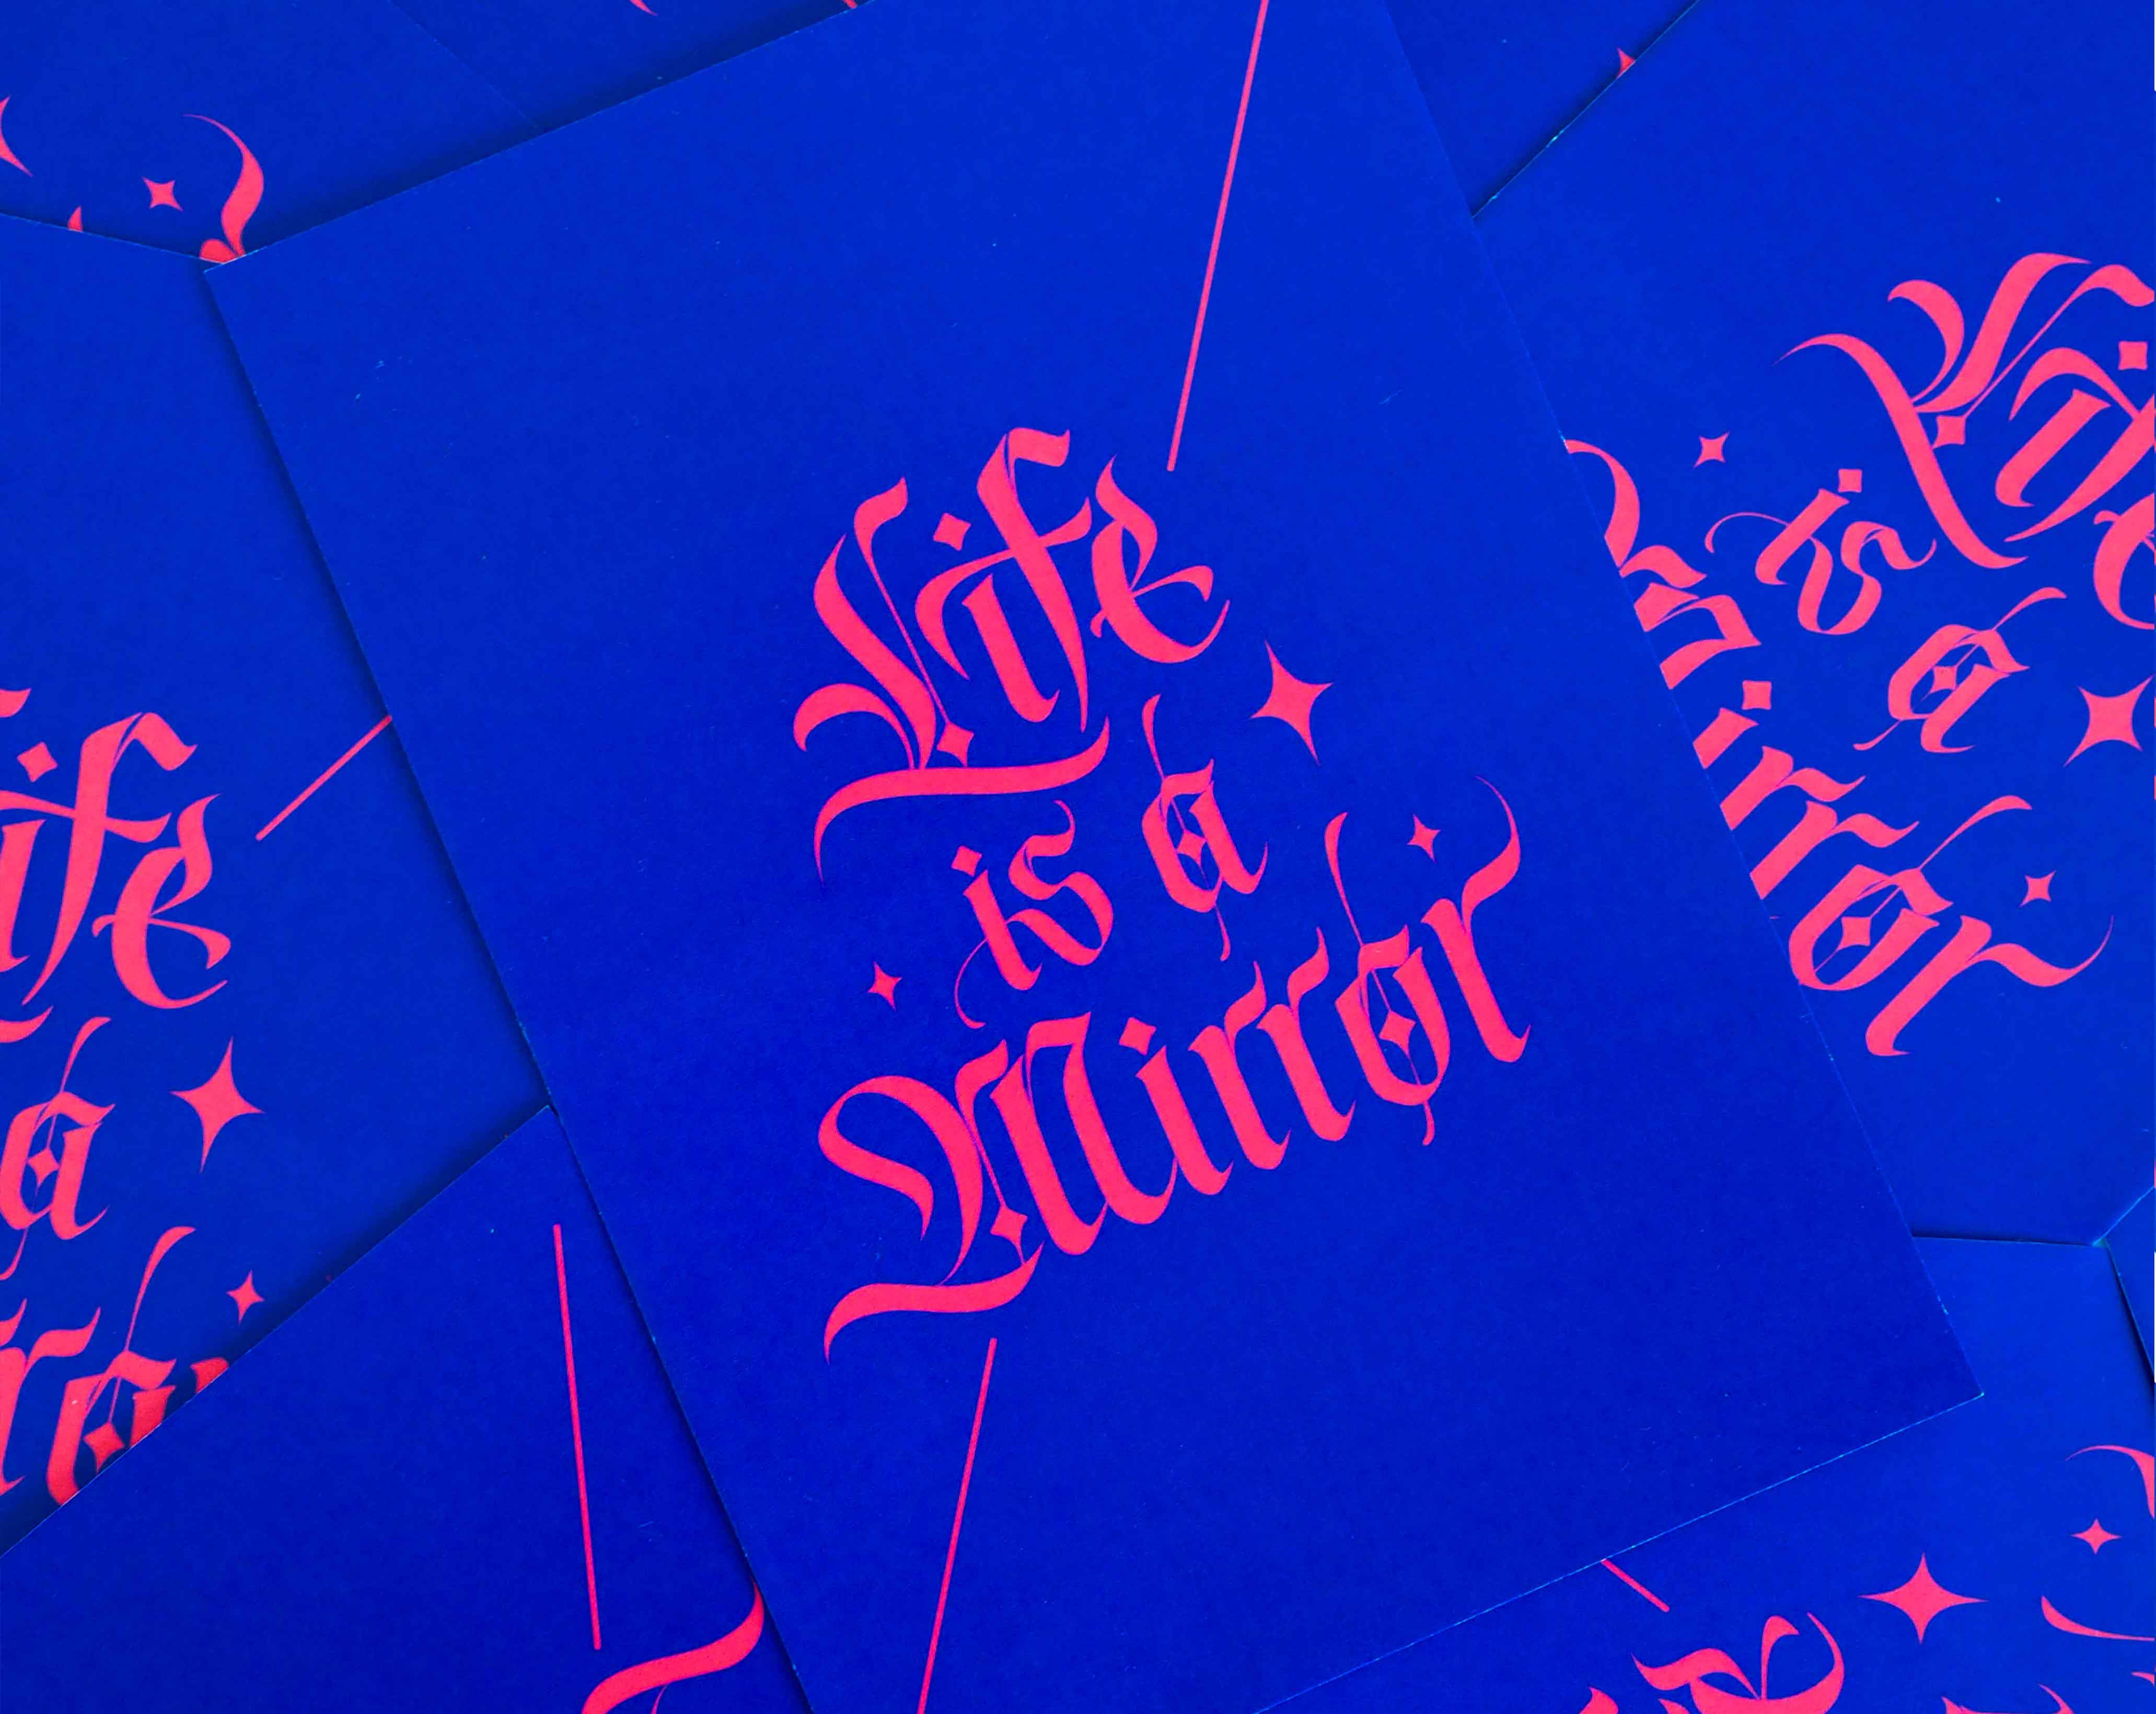 Life Is A Mirror Calligraphy